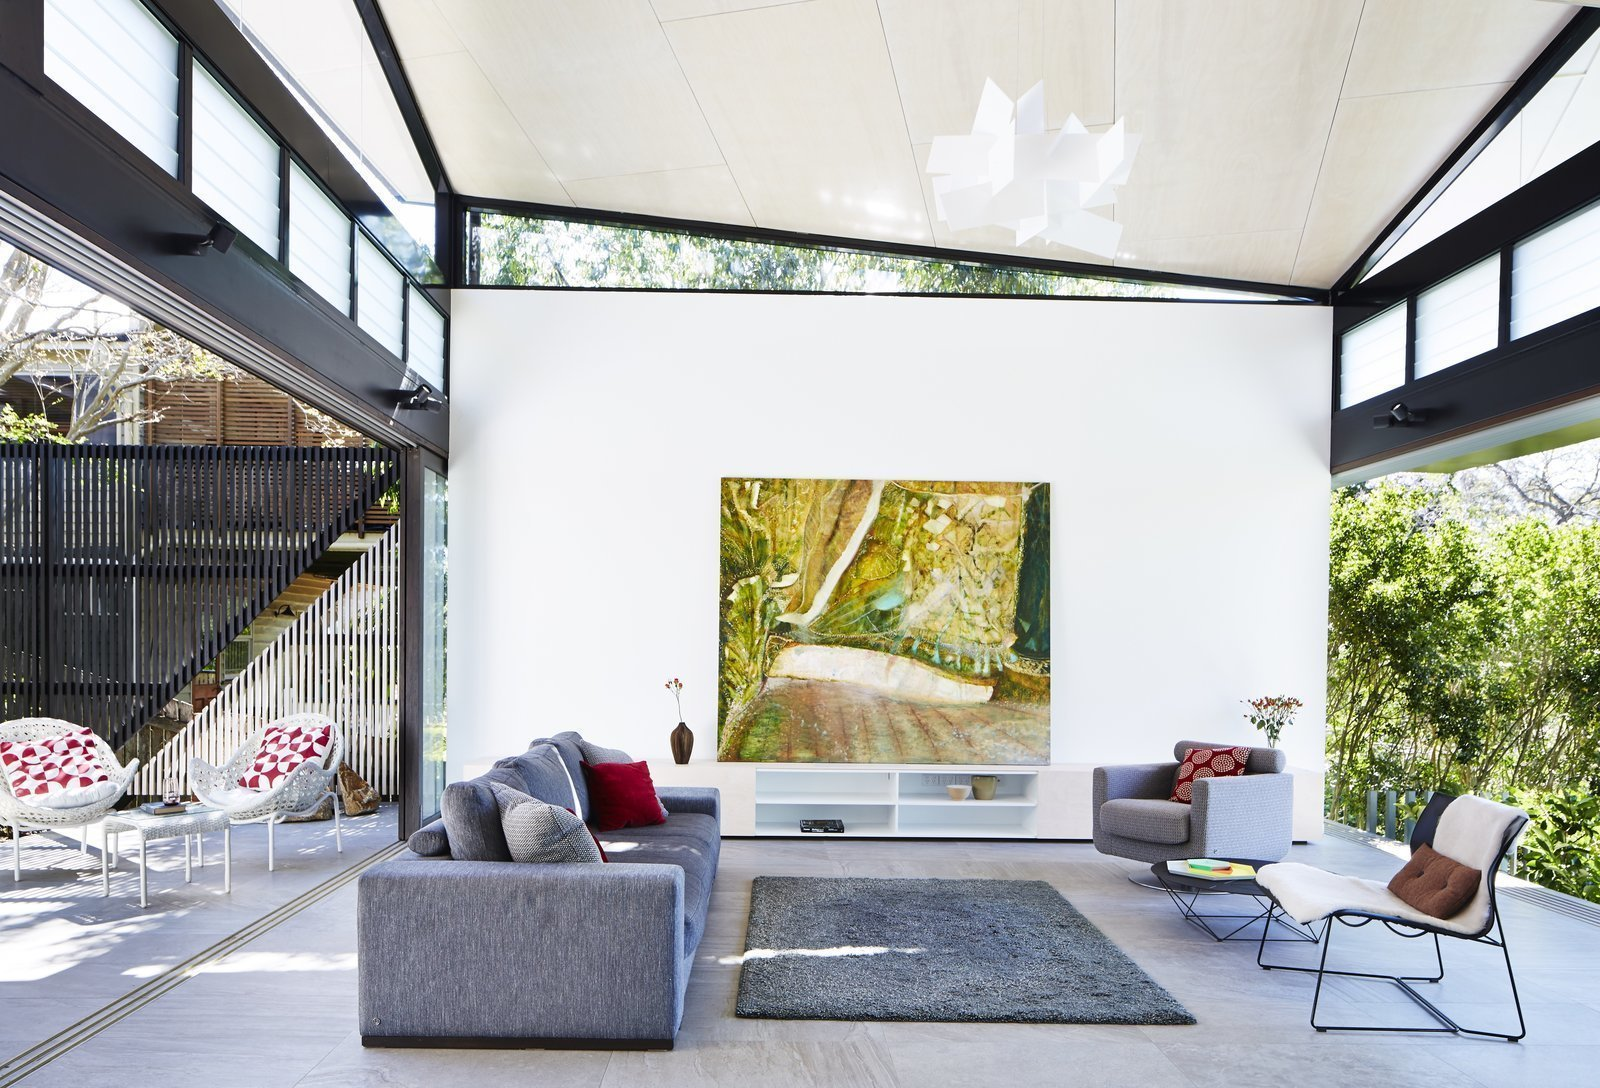 Tagged: Living Room, Sofa, Chair, Rug Floor, Console Tables, Coffee Tables, End Tables, and Pendant Lighting.  Best Photos from 9 Best Homes With Interesting Screened Facades